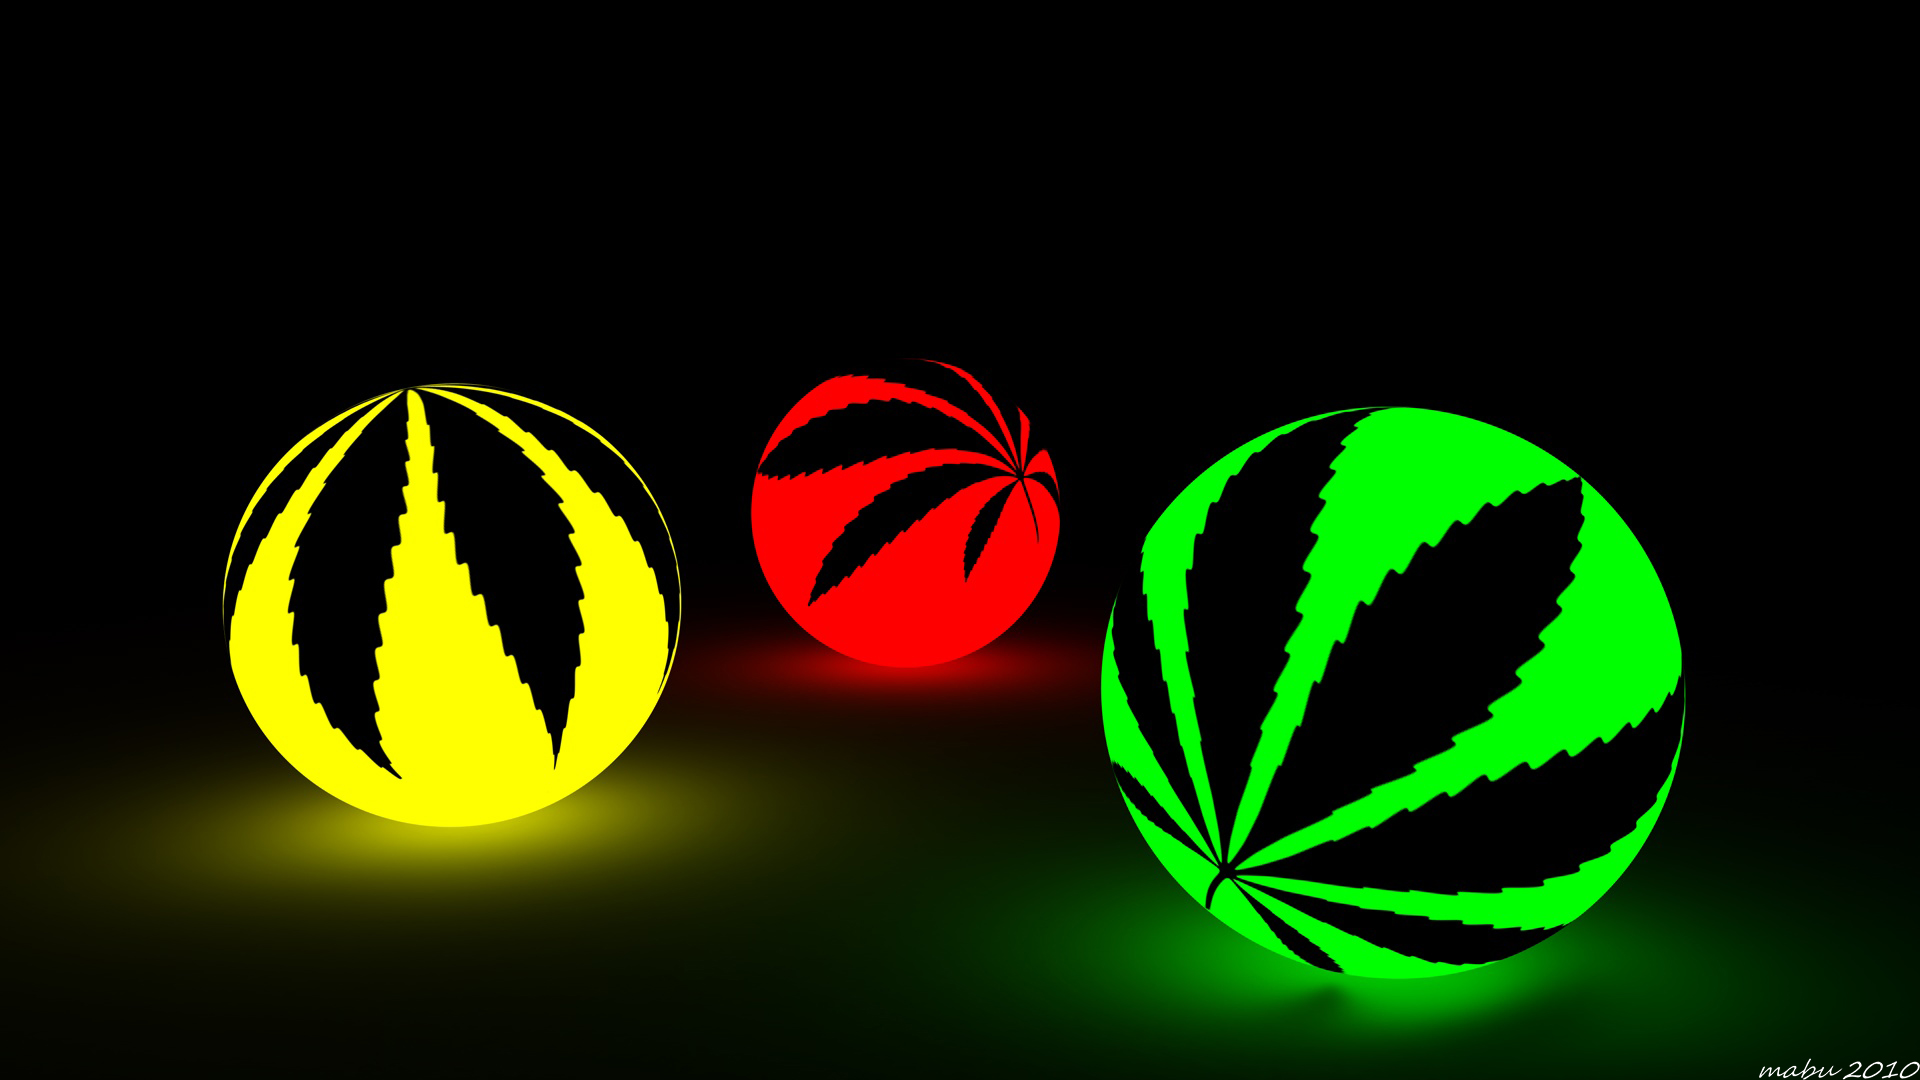 Cannabis Wallpapers Weed Hd For Android Auto Design Tech 1920x1080